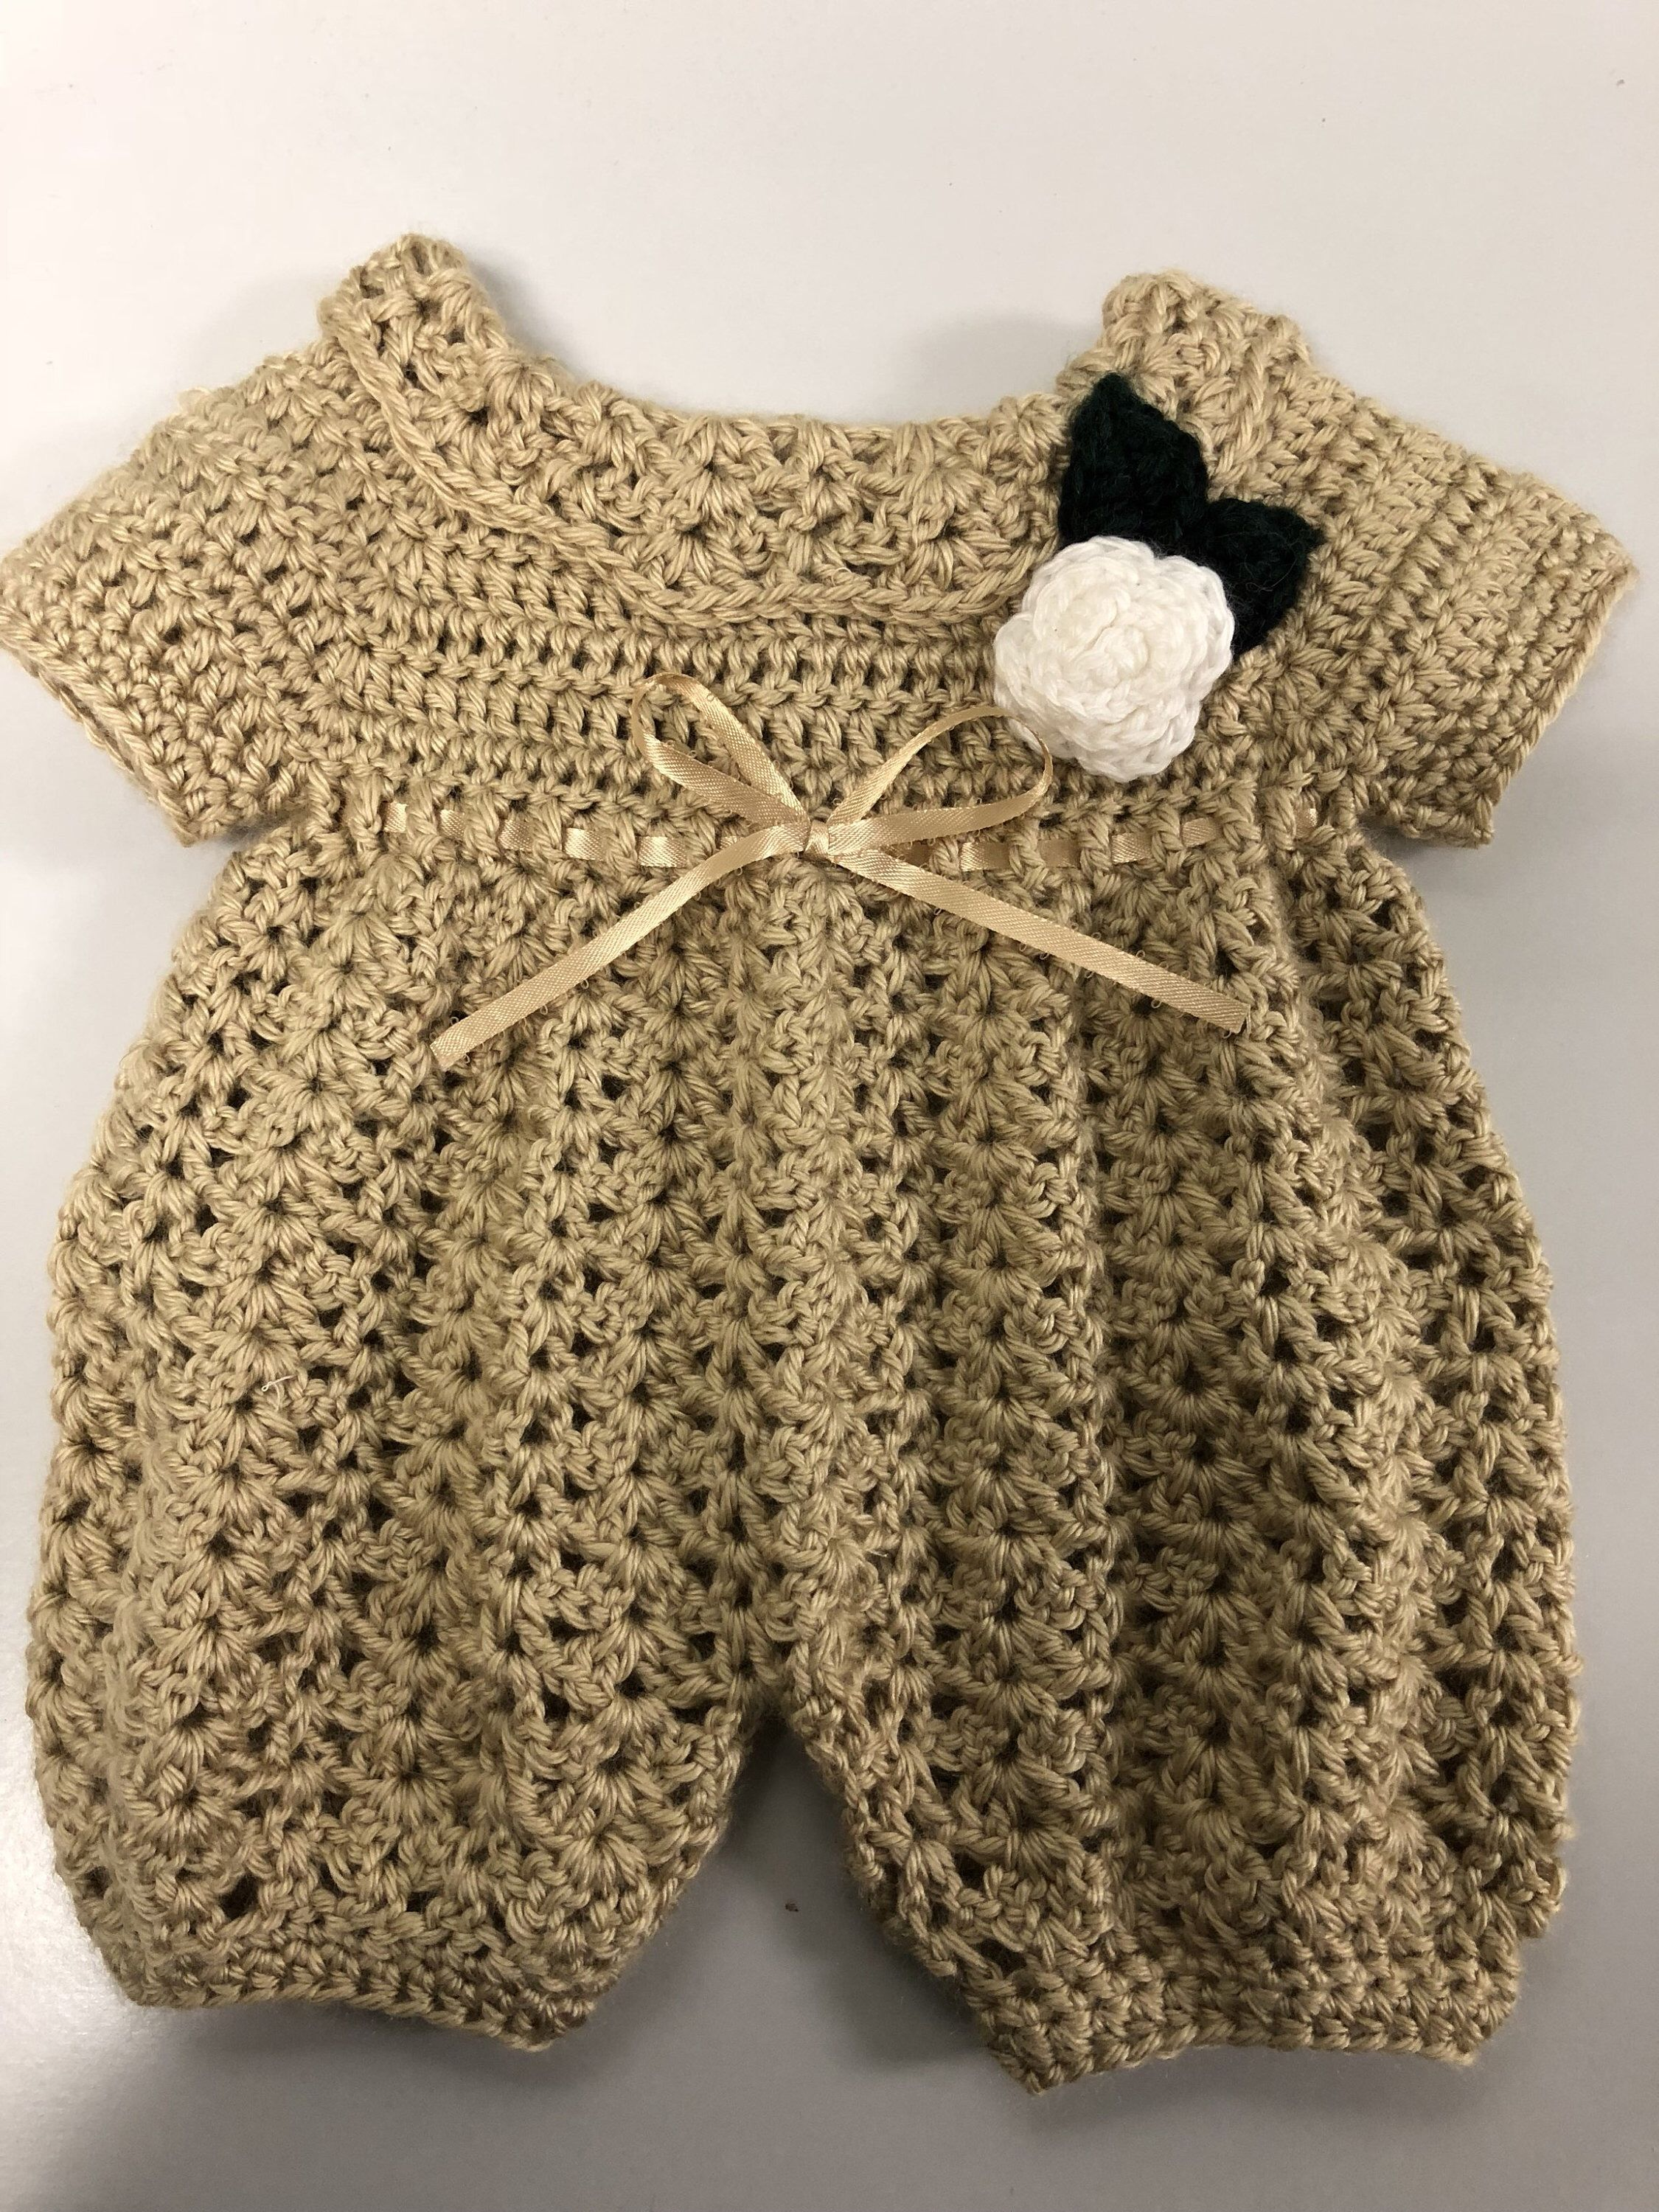 Baby girl crochet clothes  newborn lace romper  bring home baby girl outfit  baby girl knitwear  baby clothes girl  handmade lavender